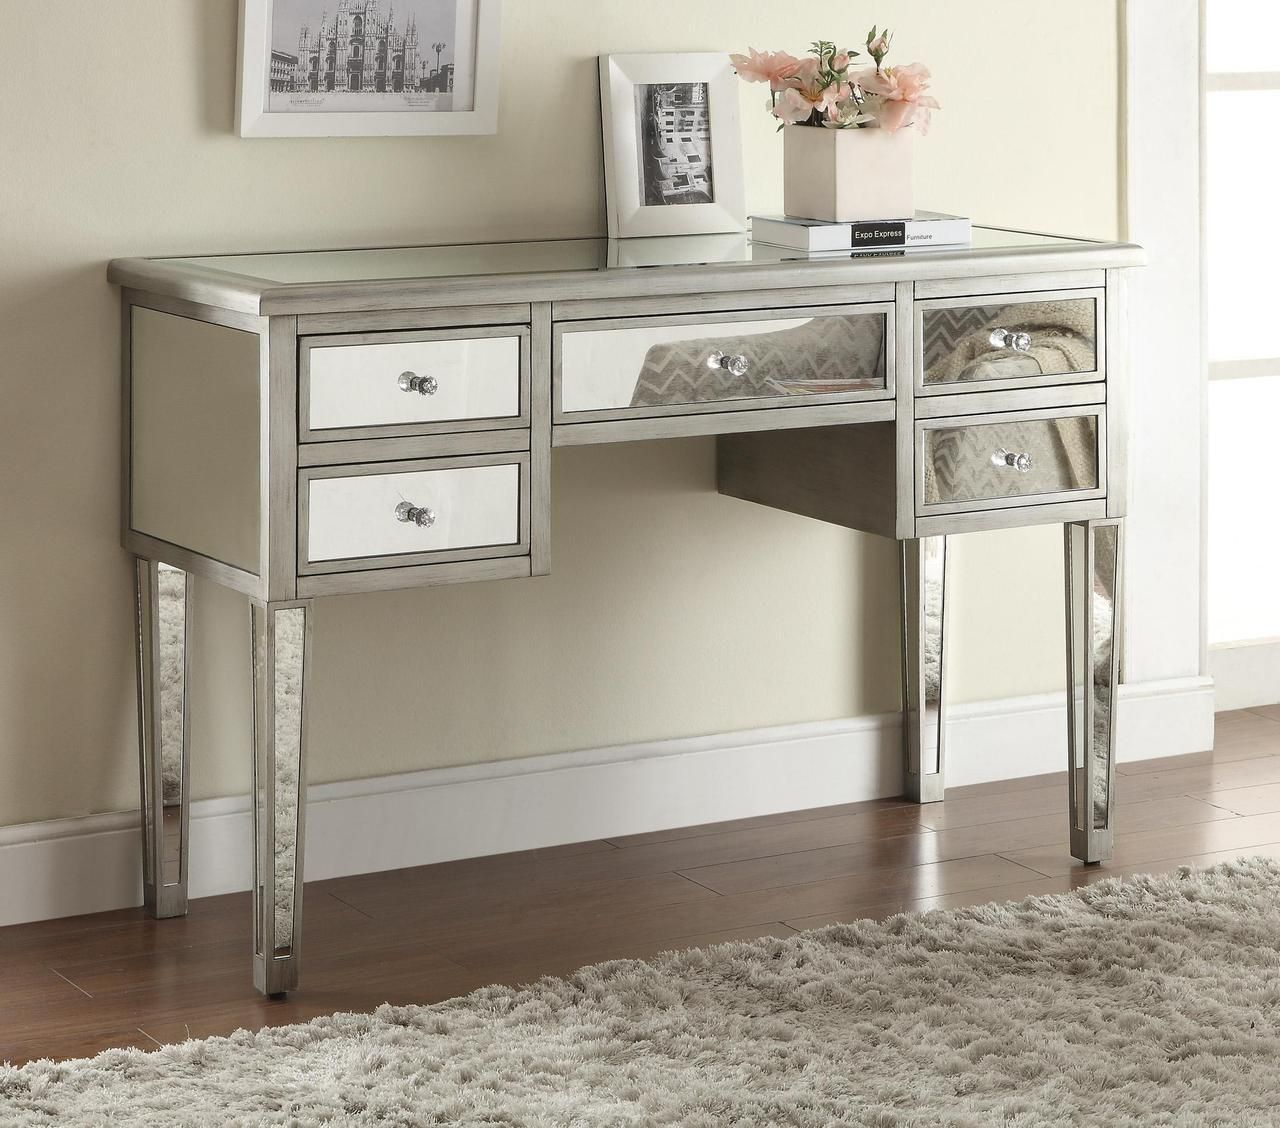 Vanity Tables Makeup Vanity Tables Vanity Table Shop Mirrored Console Table Vanity Table Set Ikea Console Table